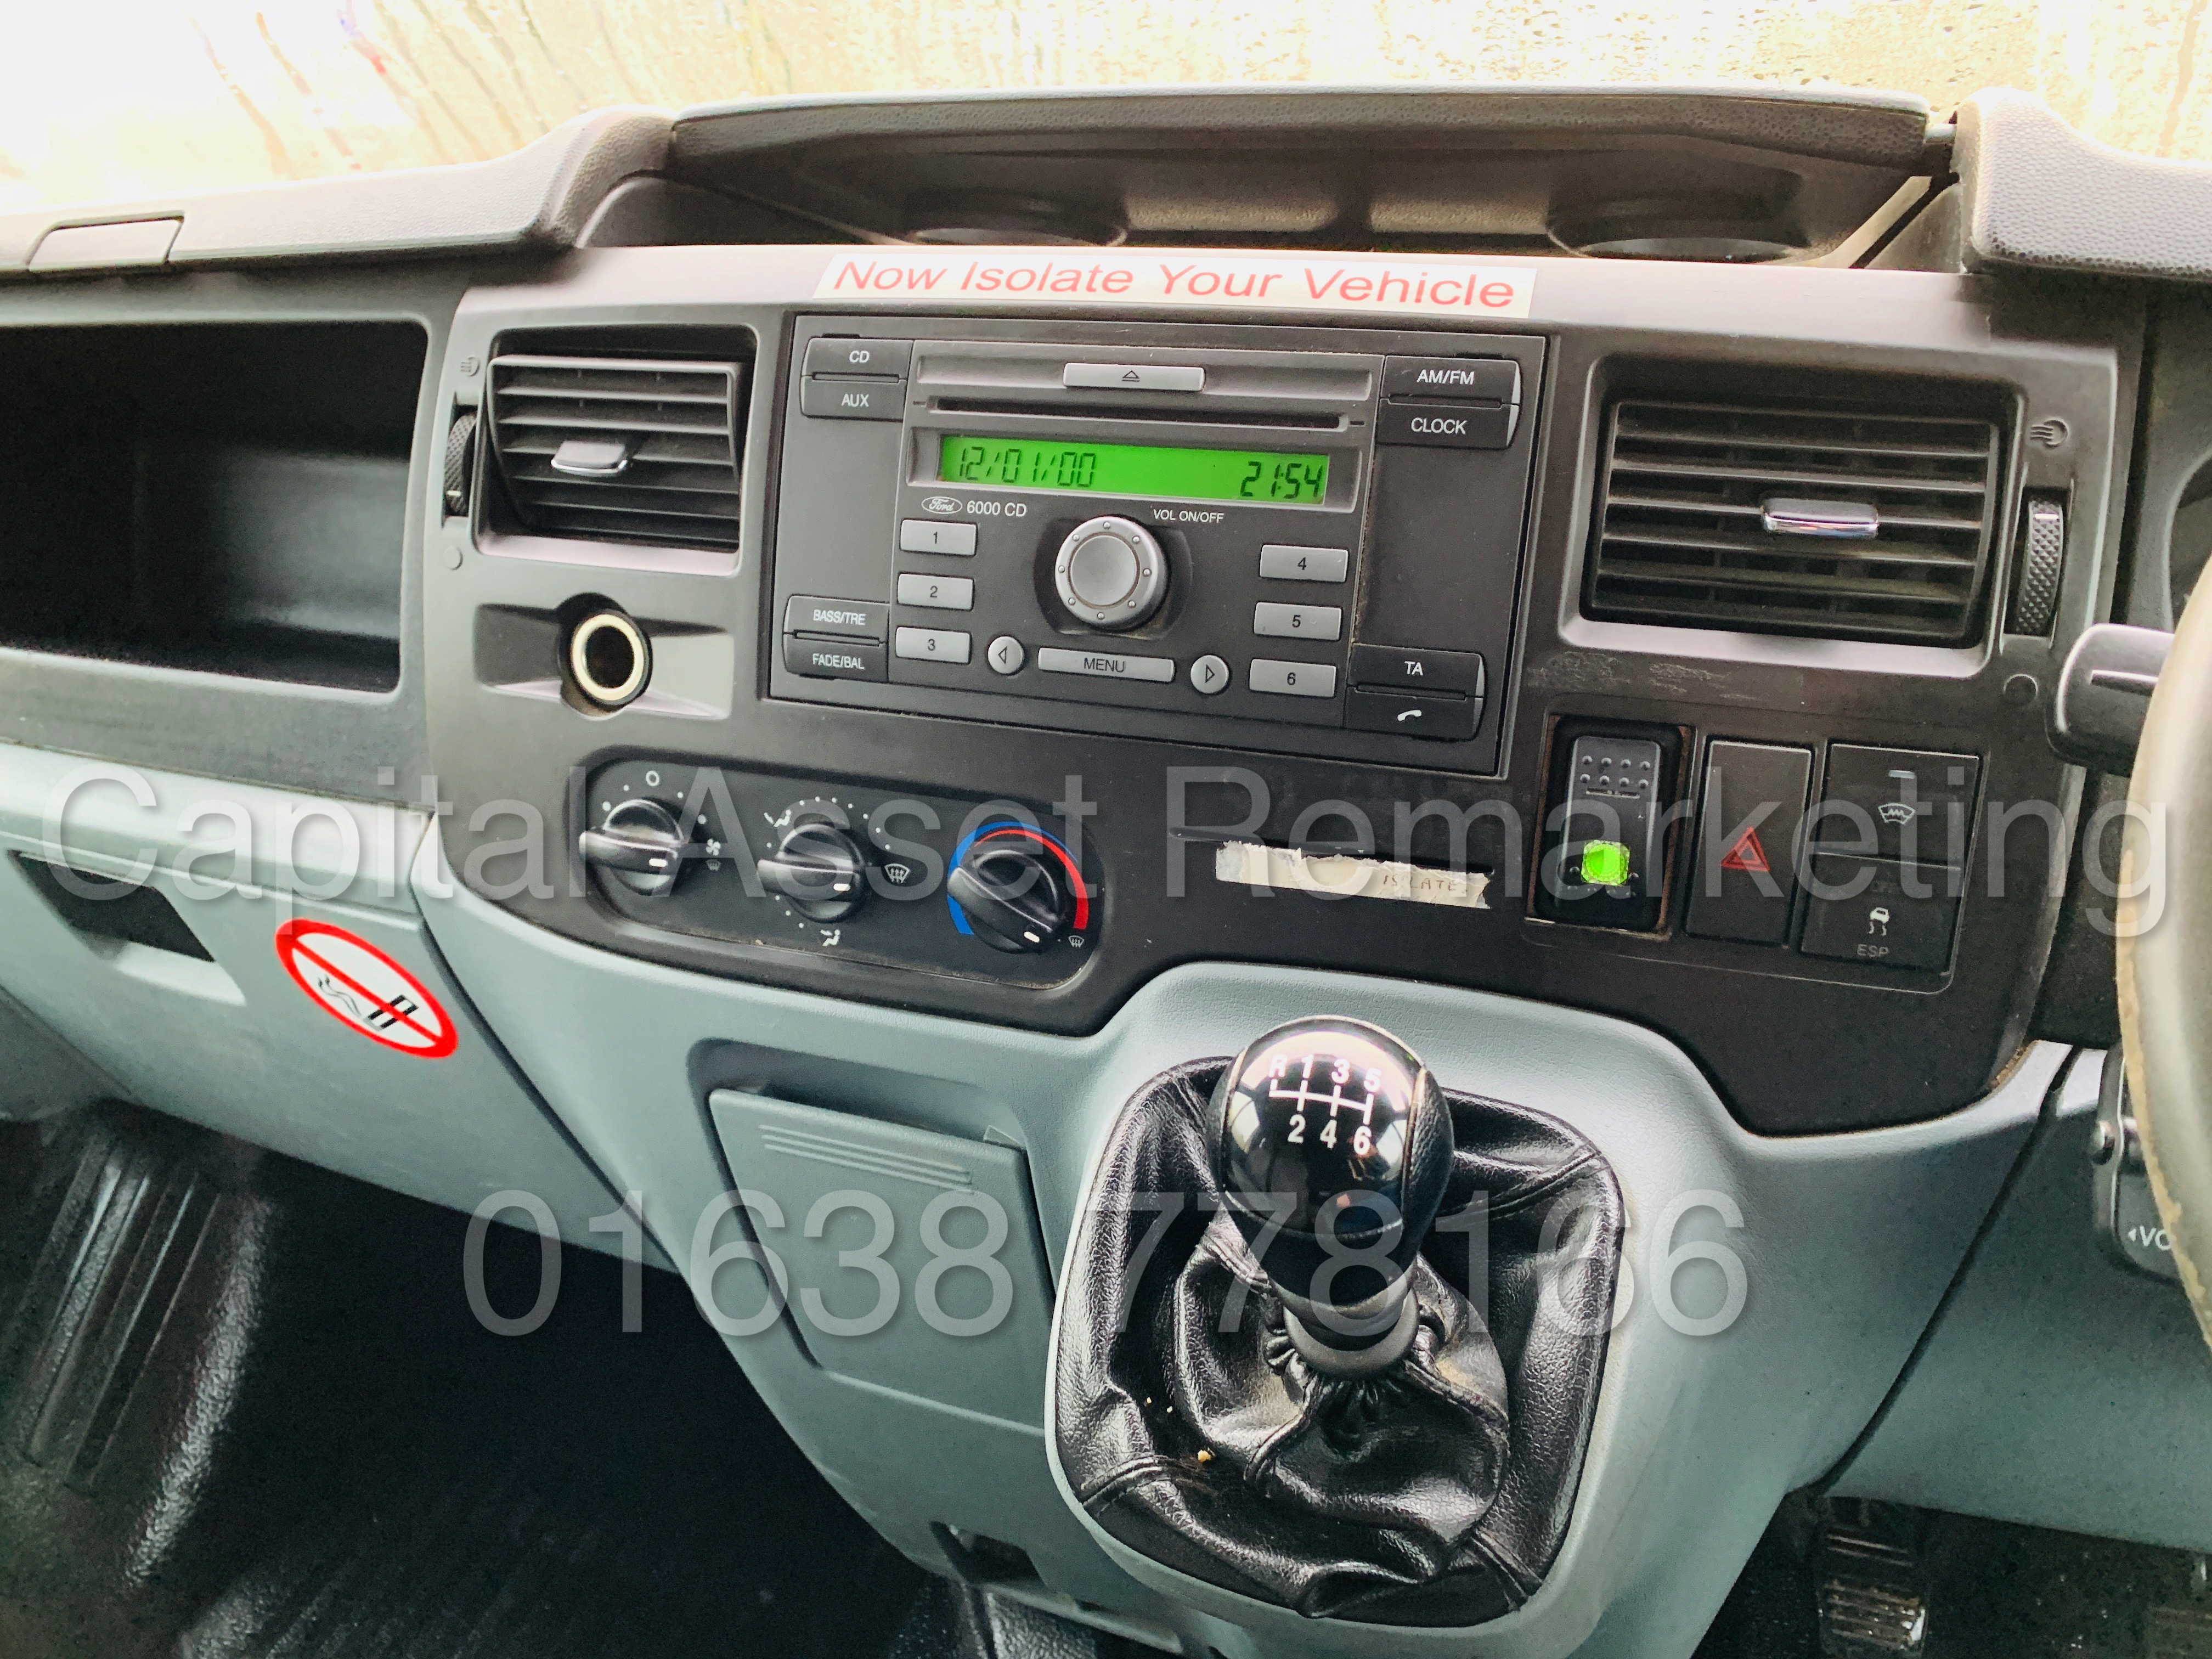 FORD TRANSIT T350 *LWB - 7 SEATER MESSING UNIT* (2014 MODEL) '2.4 TDCI - 6 SPEED' *ON BOARD TOILET* - Image 39 of 44